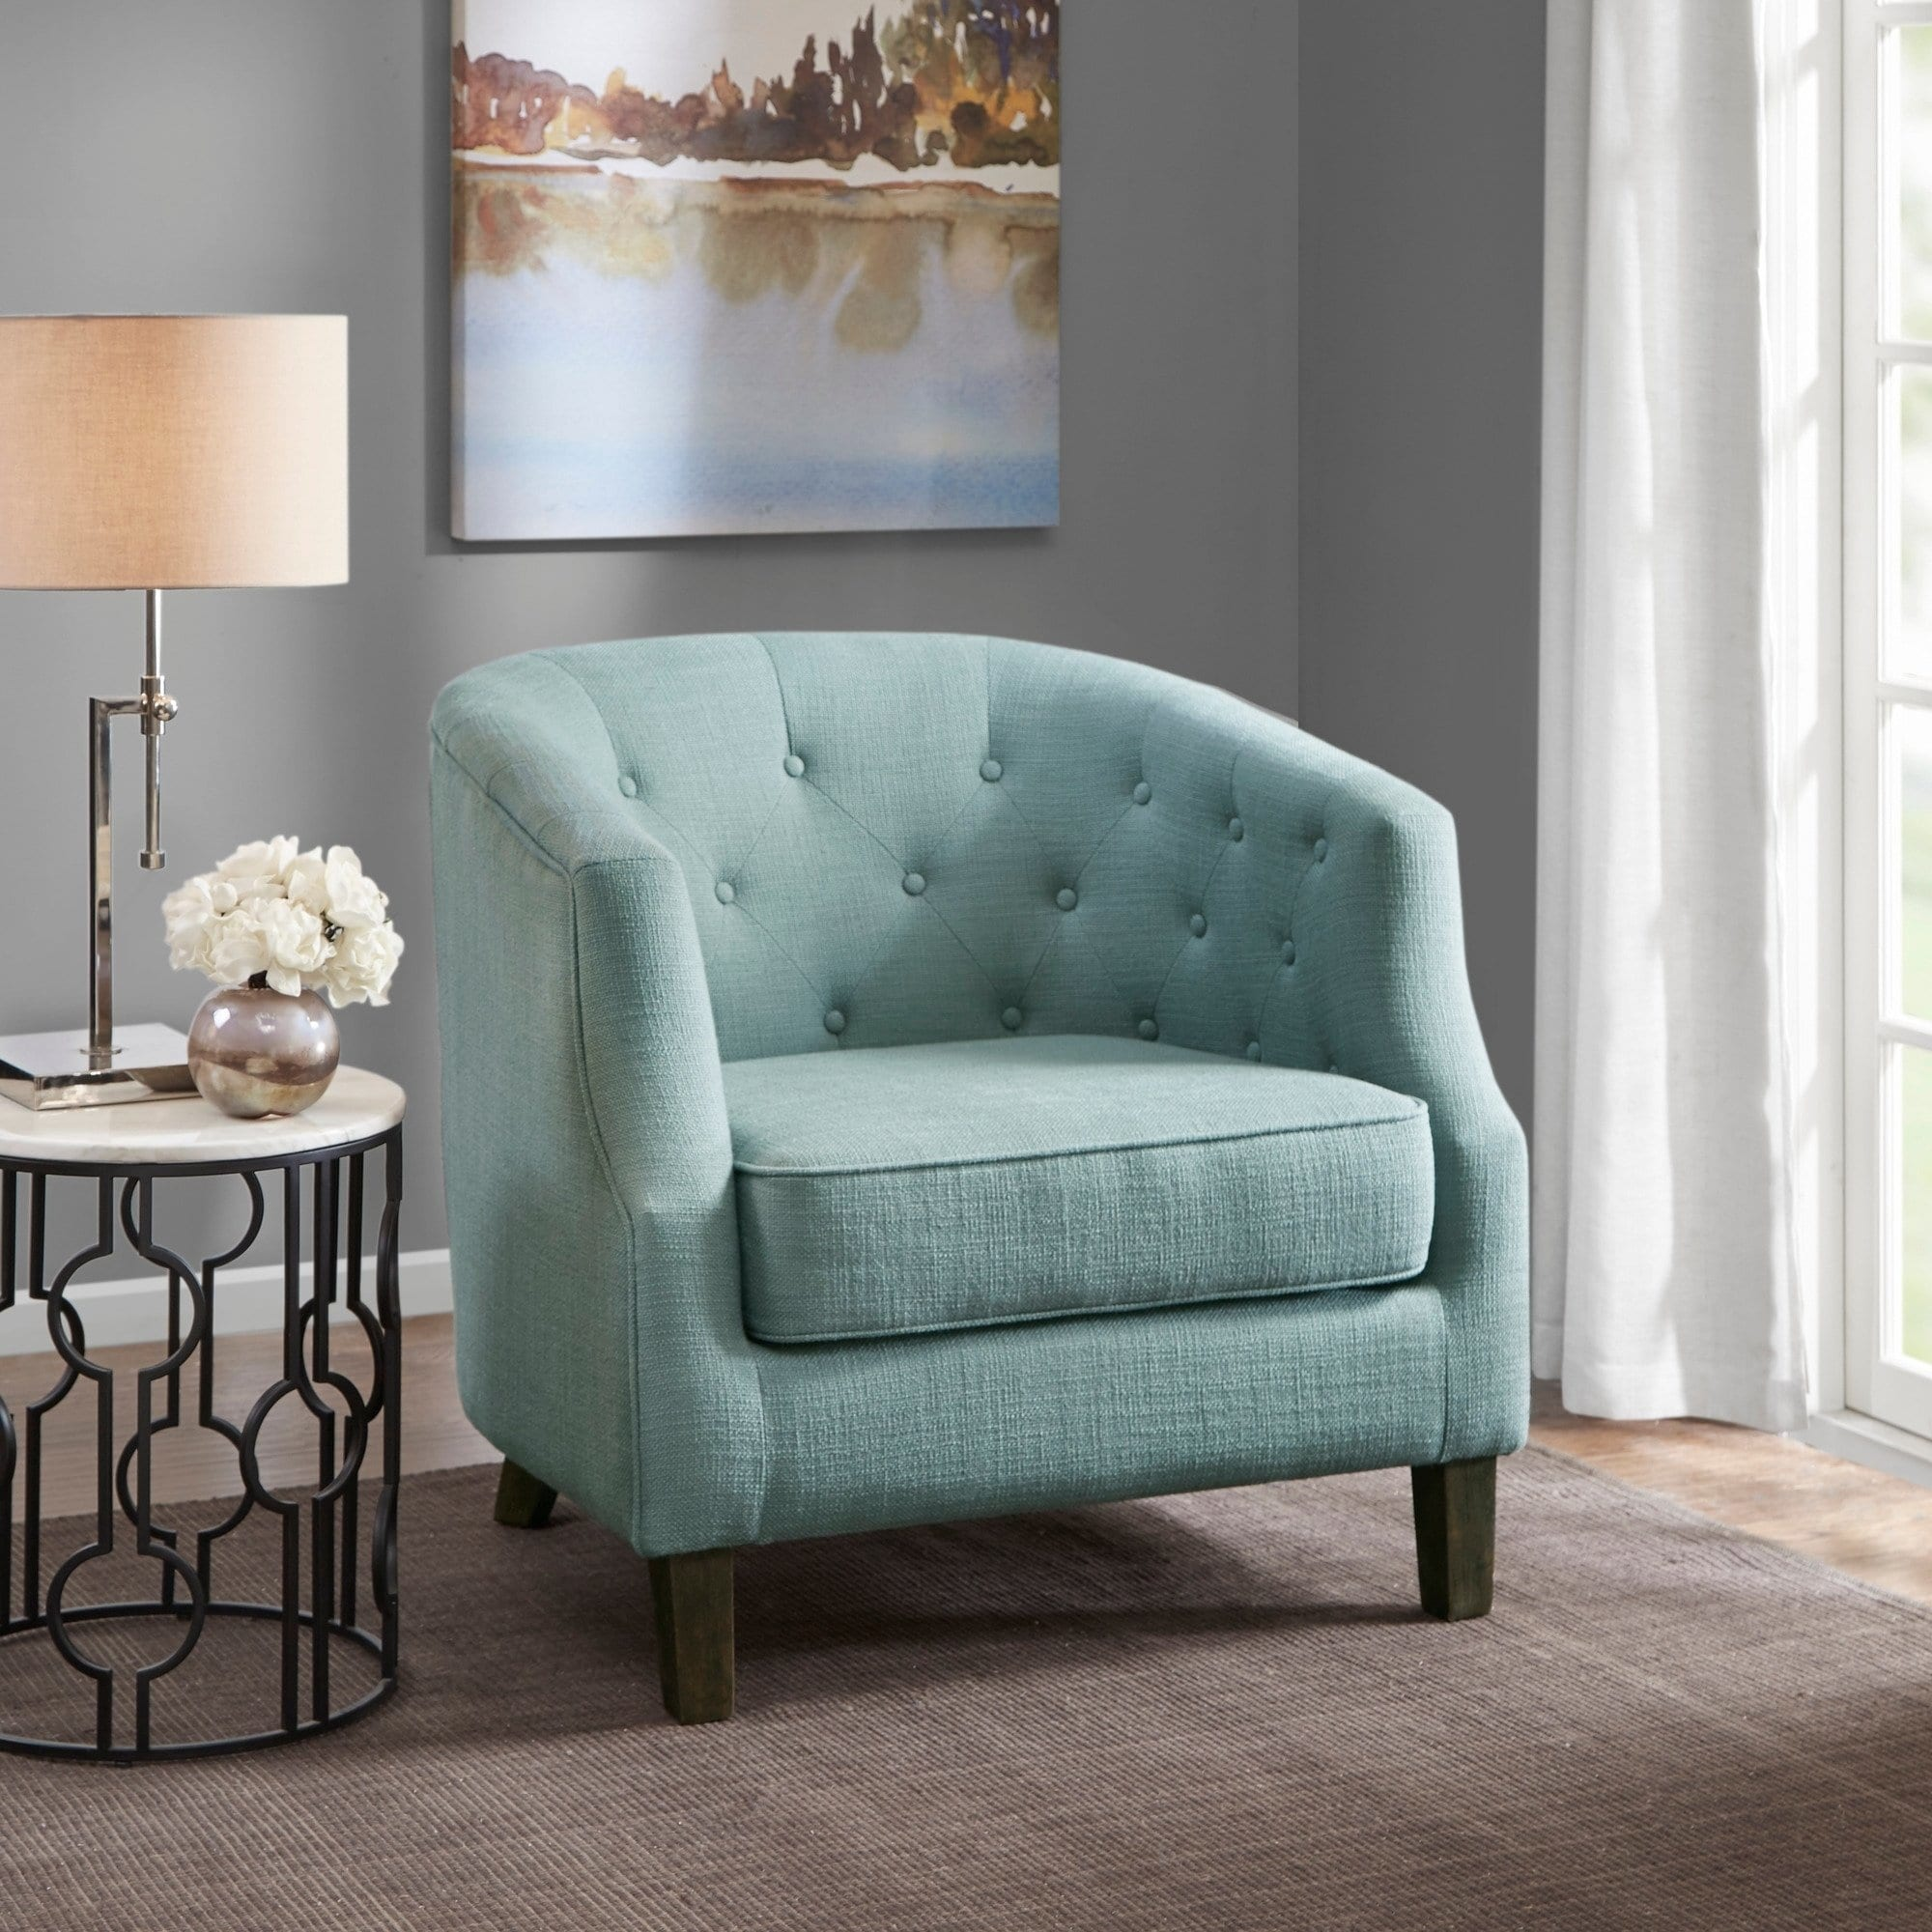 Astonishing Madison Park Aden Dusty Aqua Chesterfield Barrel Chair 33 Machost Co Dining Chair Design Ideas Machostcouk